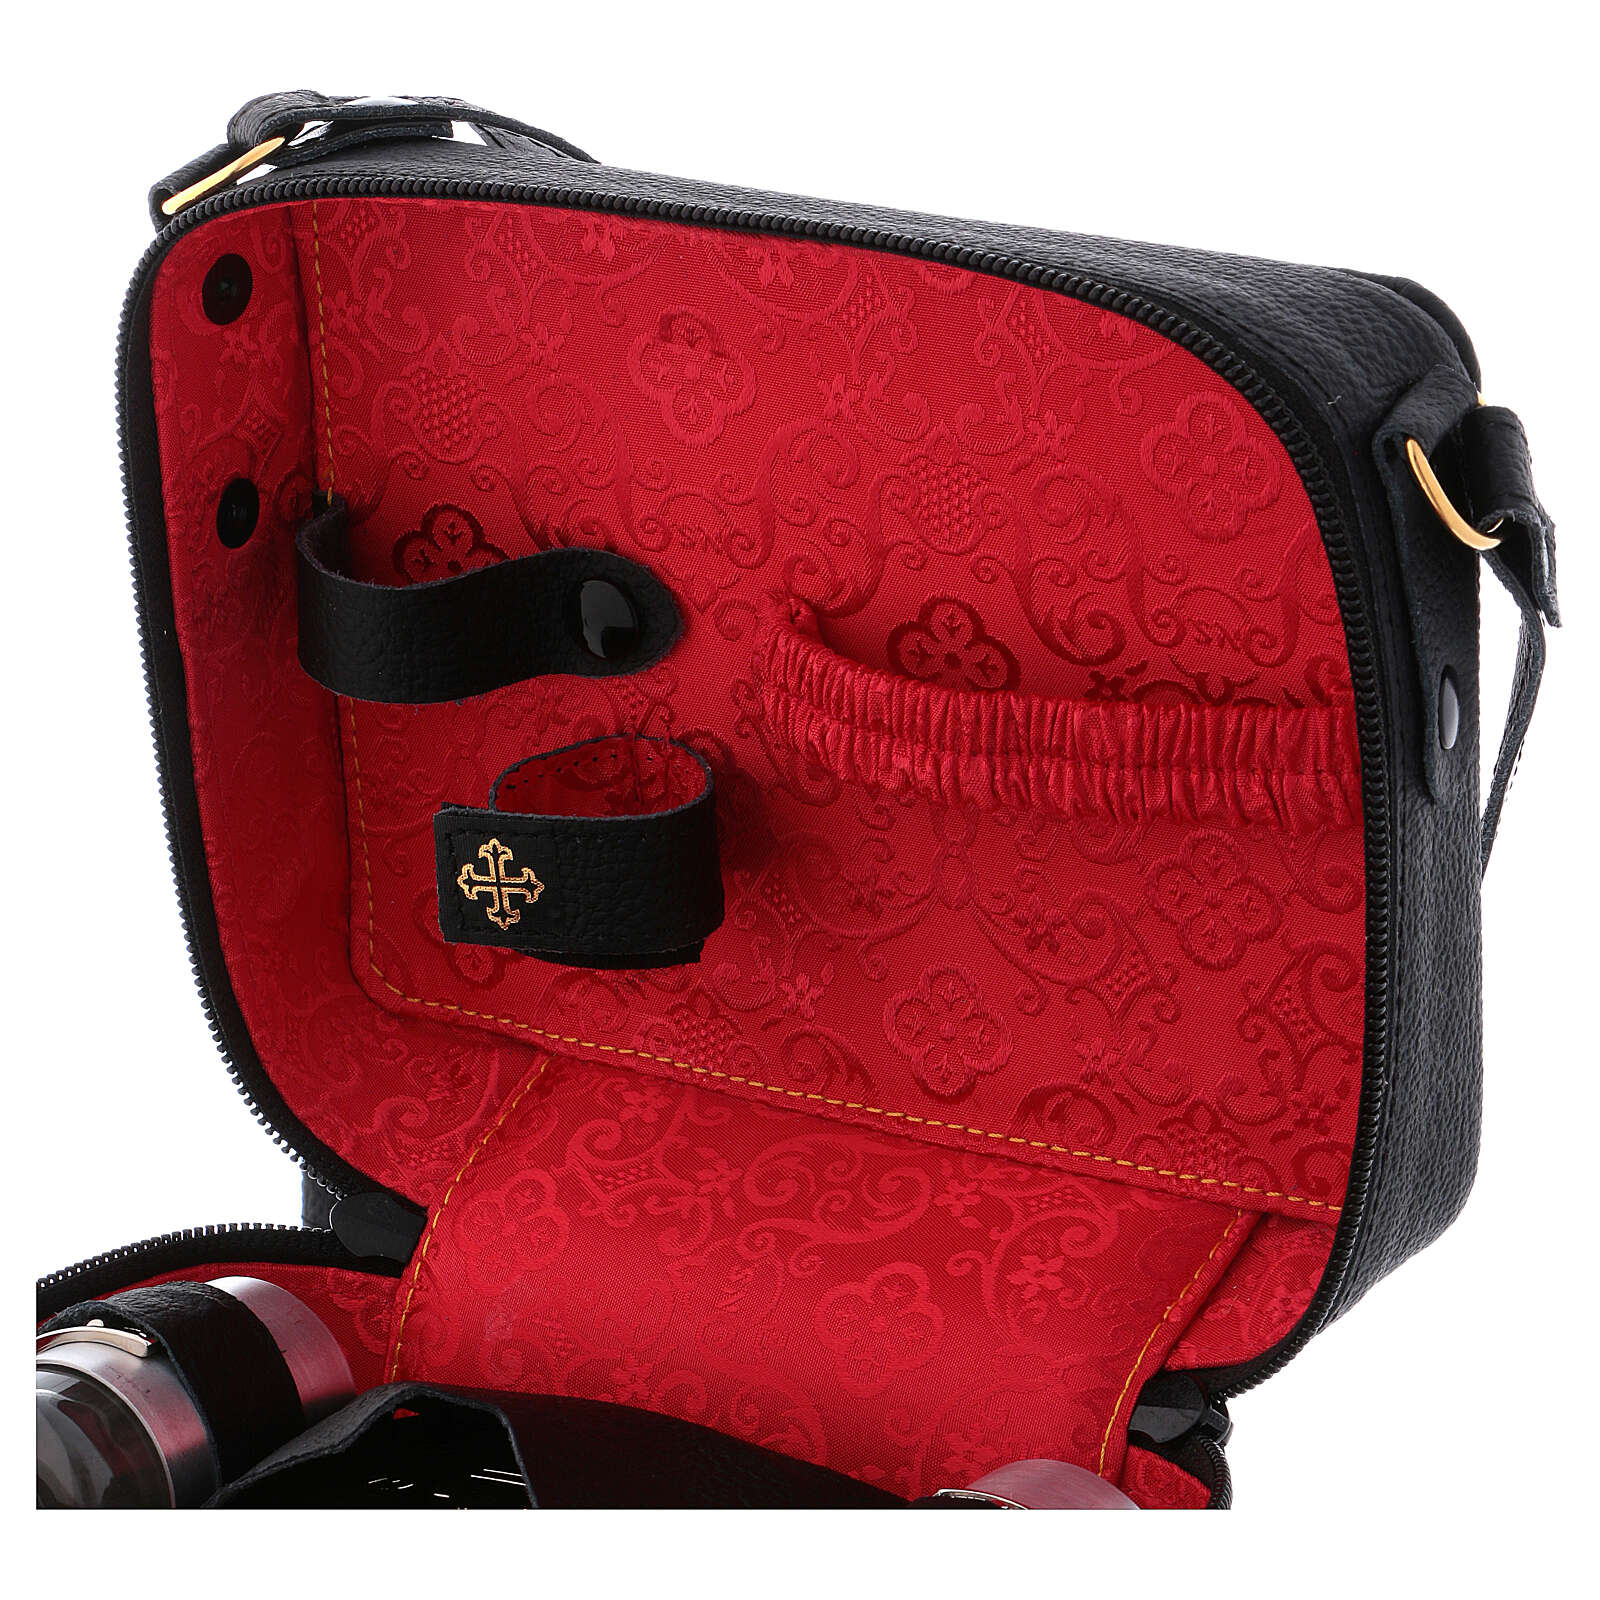 Mass kit with bag in leather, lined with red fabric 3